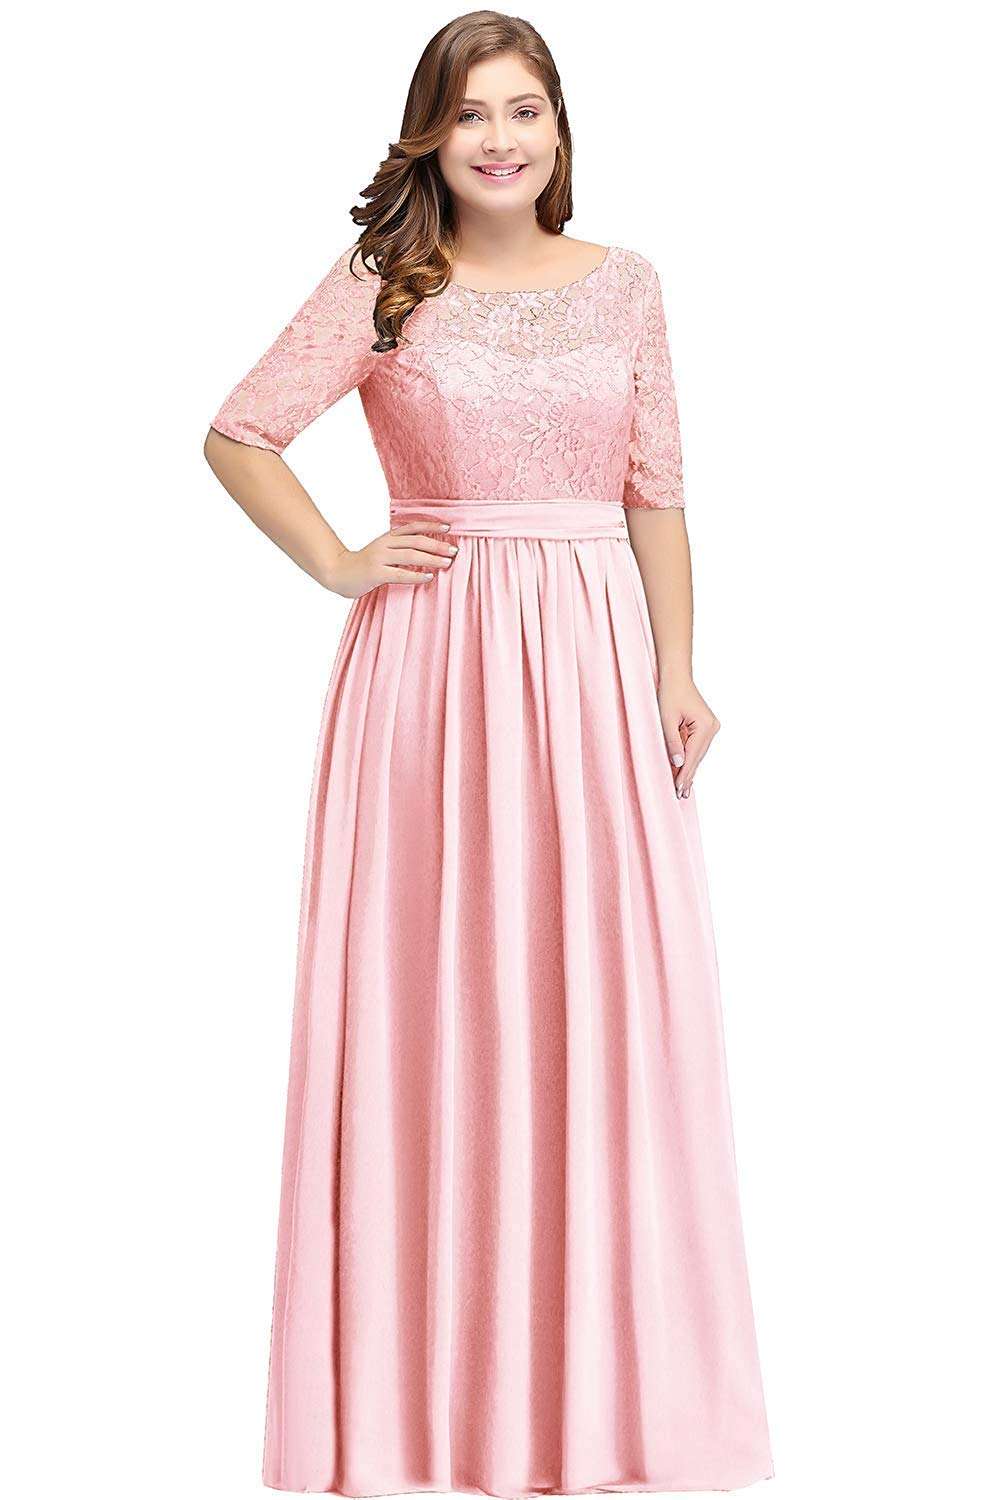 Babyonlinedress Women Long Special Occasion Dress Plus Size Gown Pink 16W